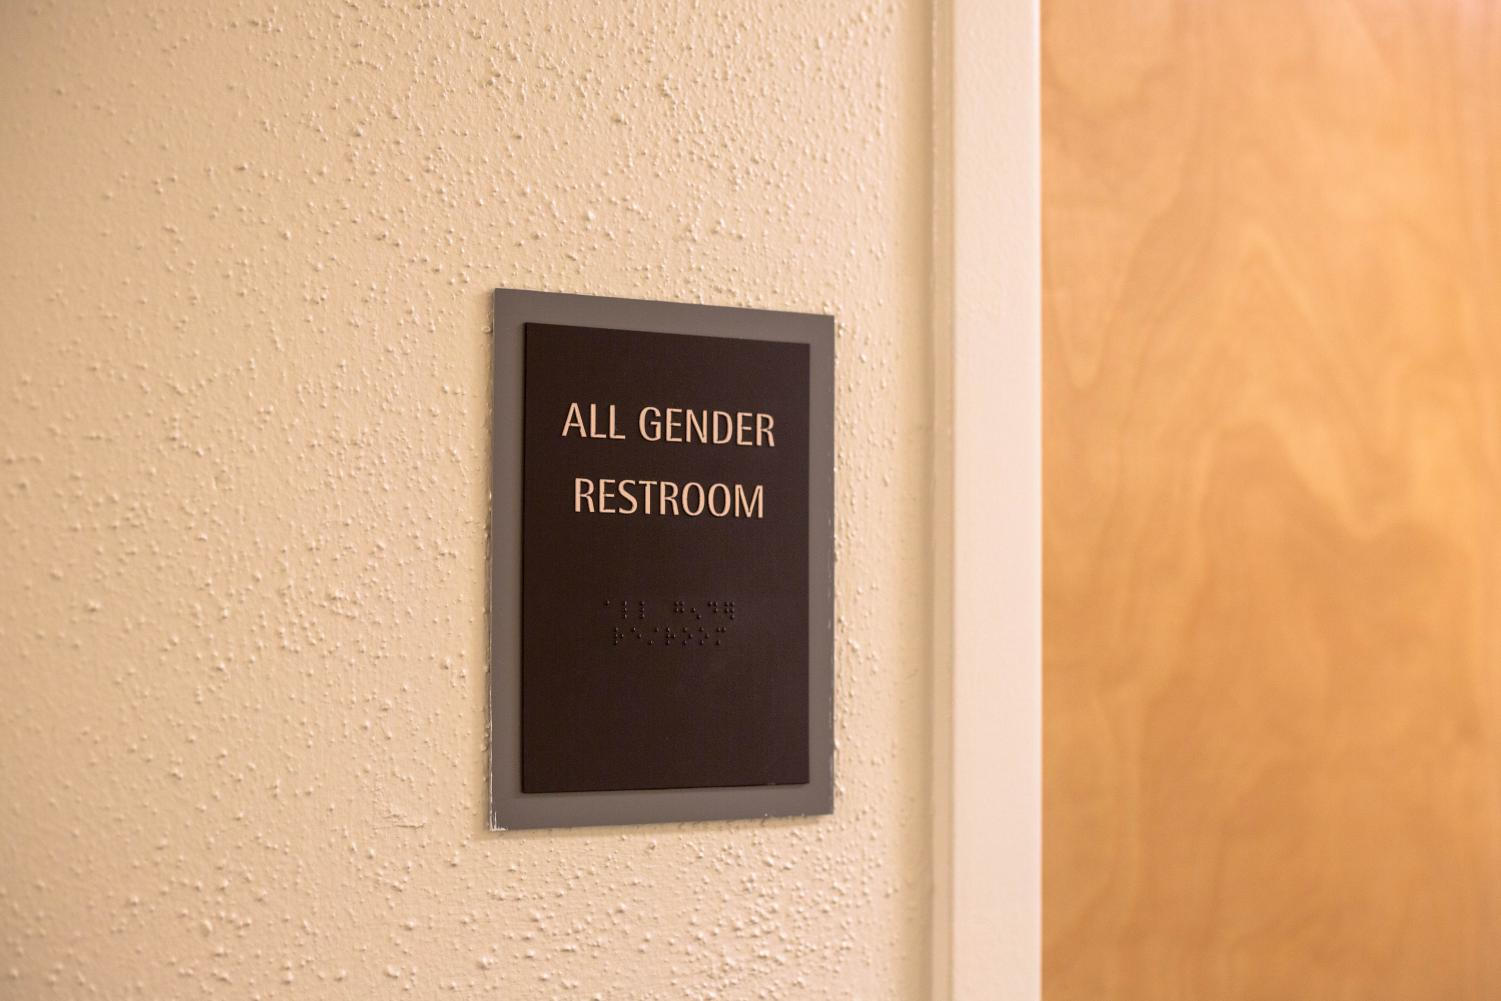 A research team in O'Donnell Hall is pushing for gender neutral bathrooms.